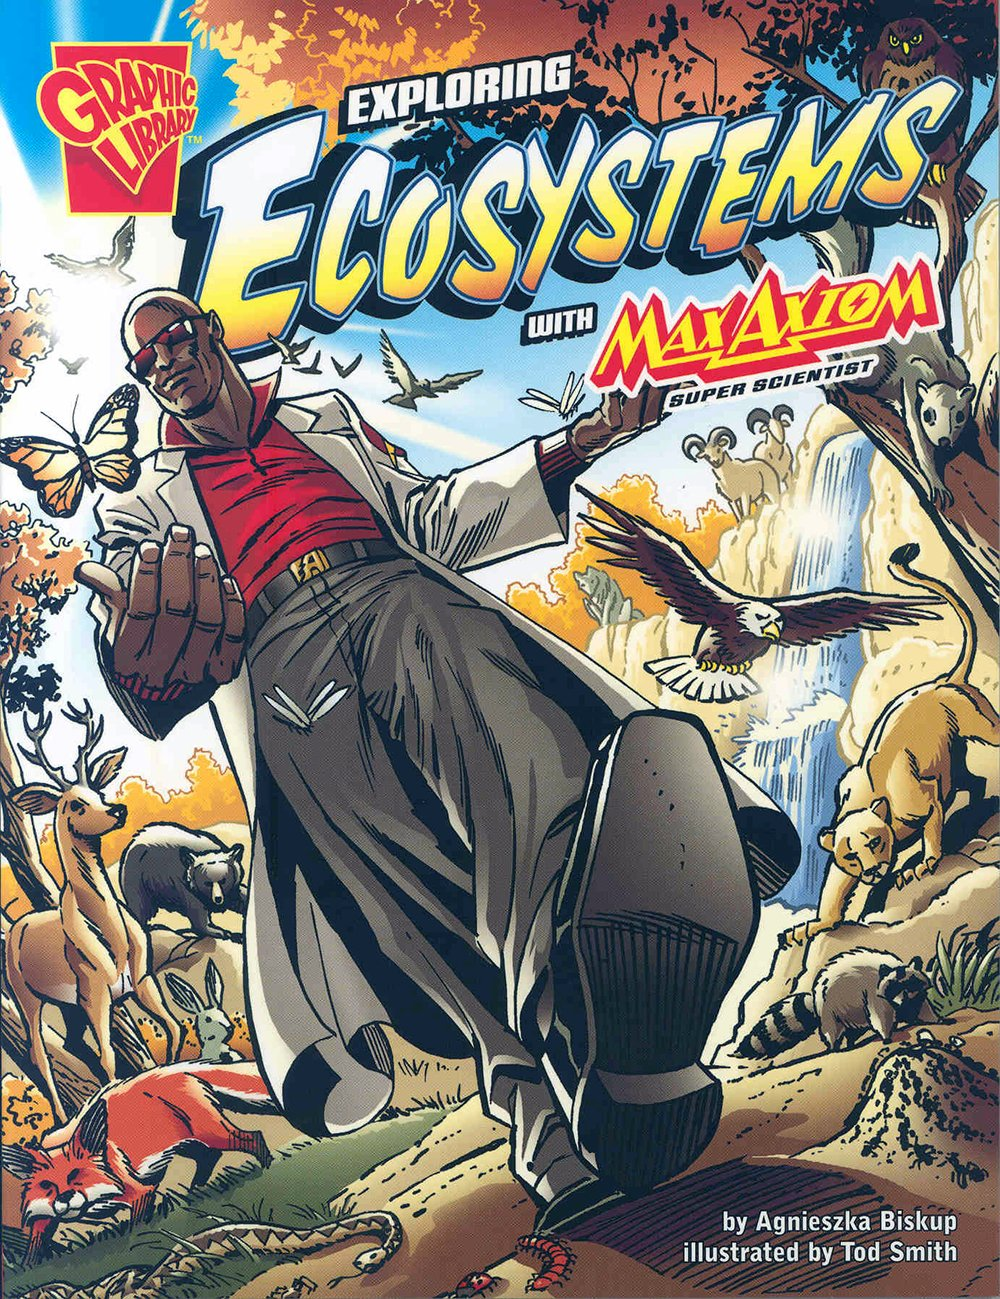 exploring ecosystems with max axiom super scientist graphic